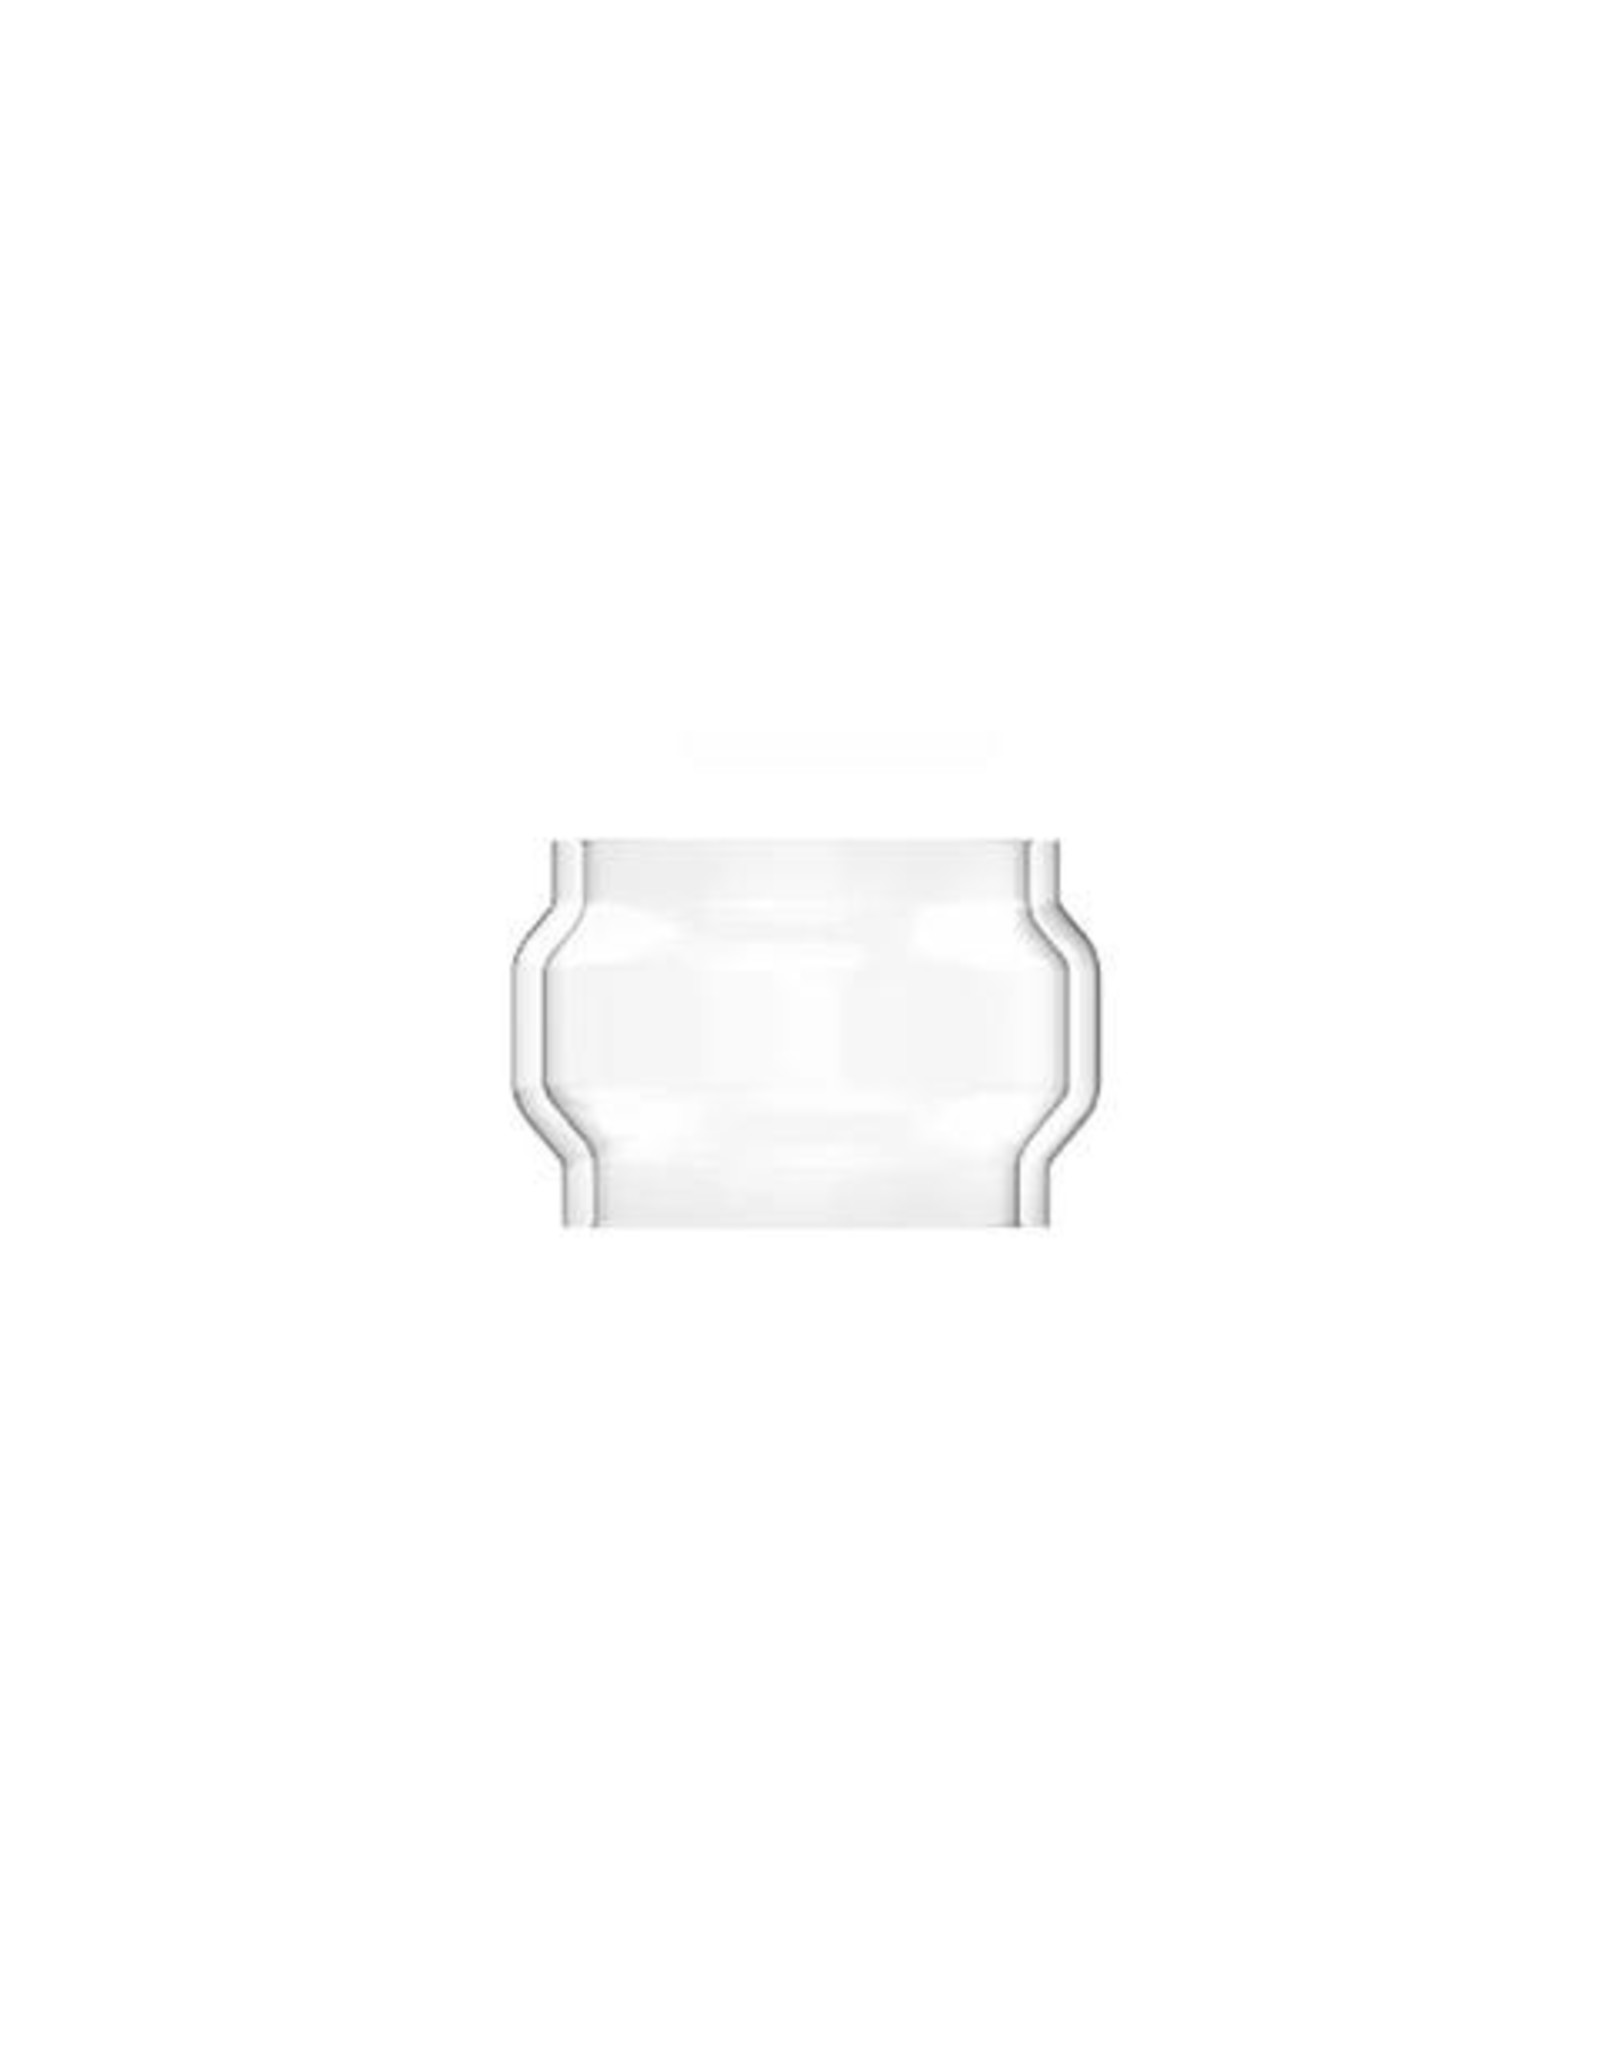 UWELL UWELL Crown 5 Replacement Glass